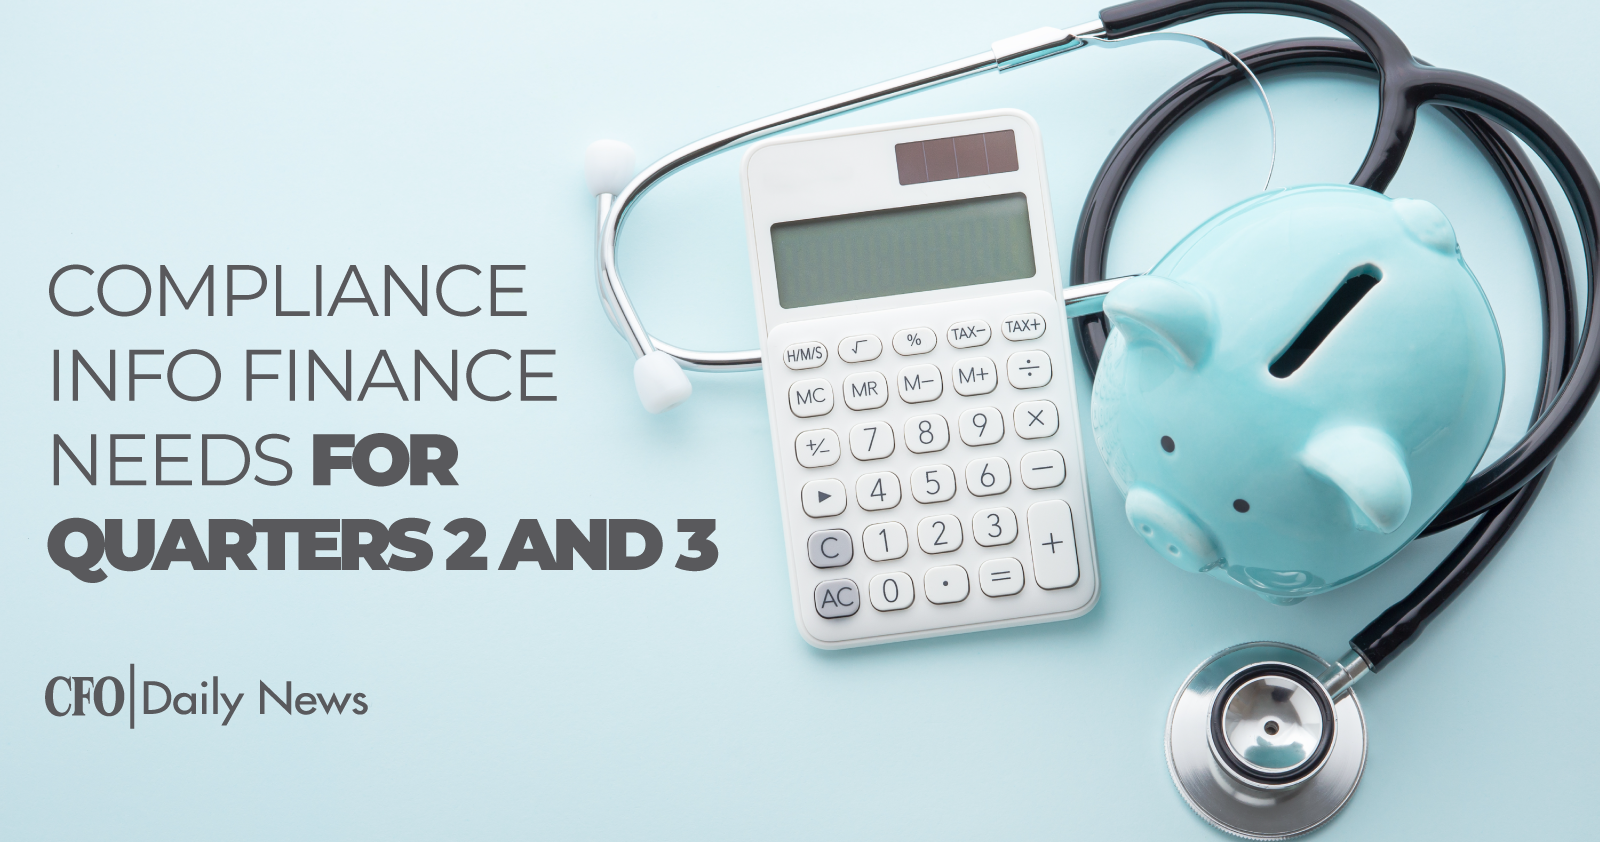 Compliance Info Finance Needs For Quarters 2 and 3